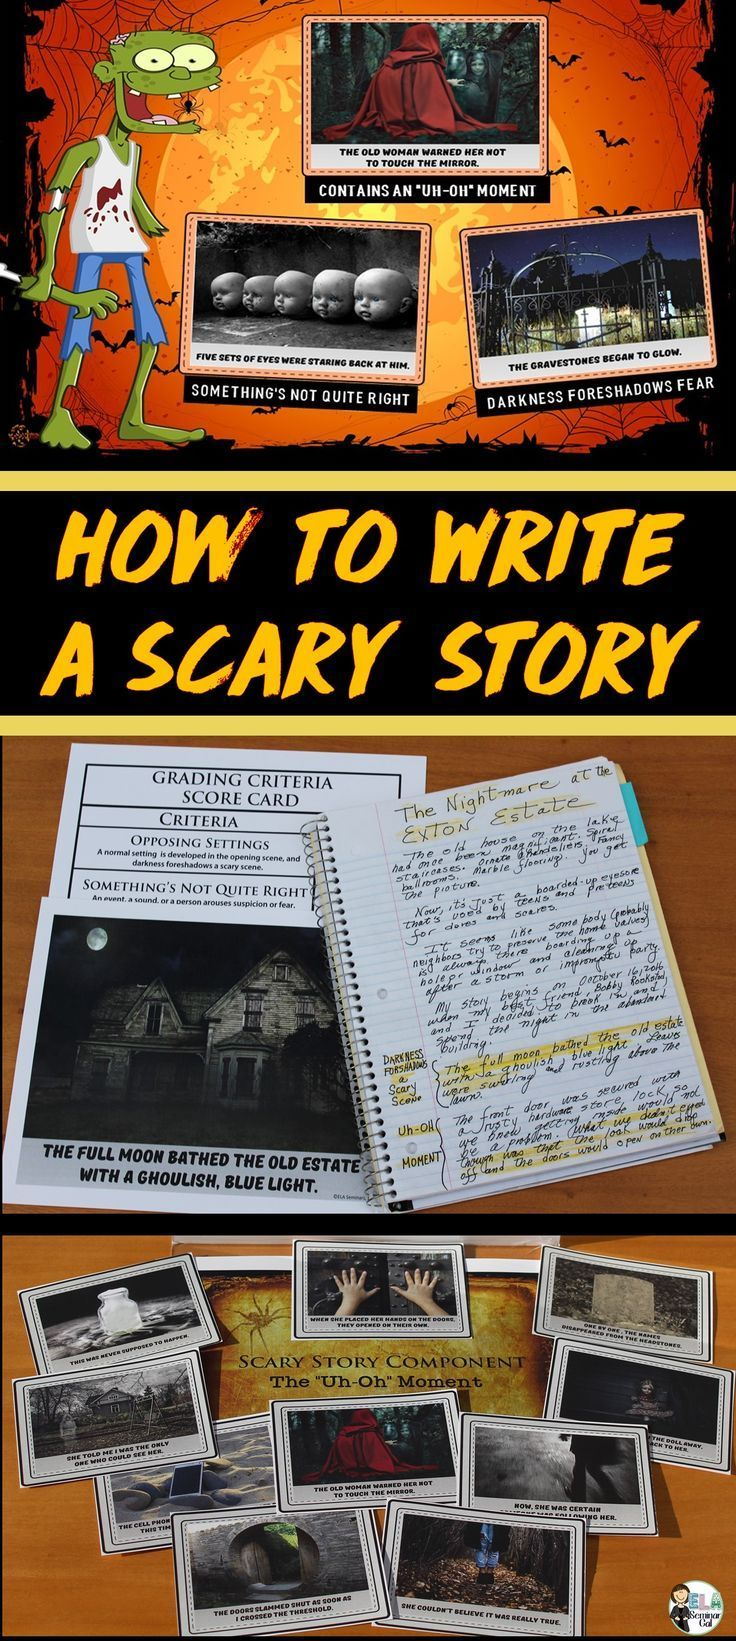 BLOG POST - Scary Story Writing 101: Incorporate 3 scary story elements into narratives to craft classic horror tales.